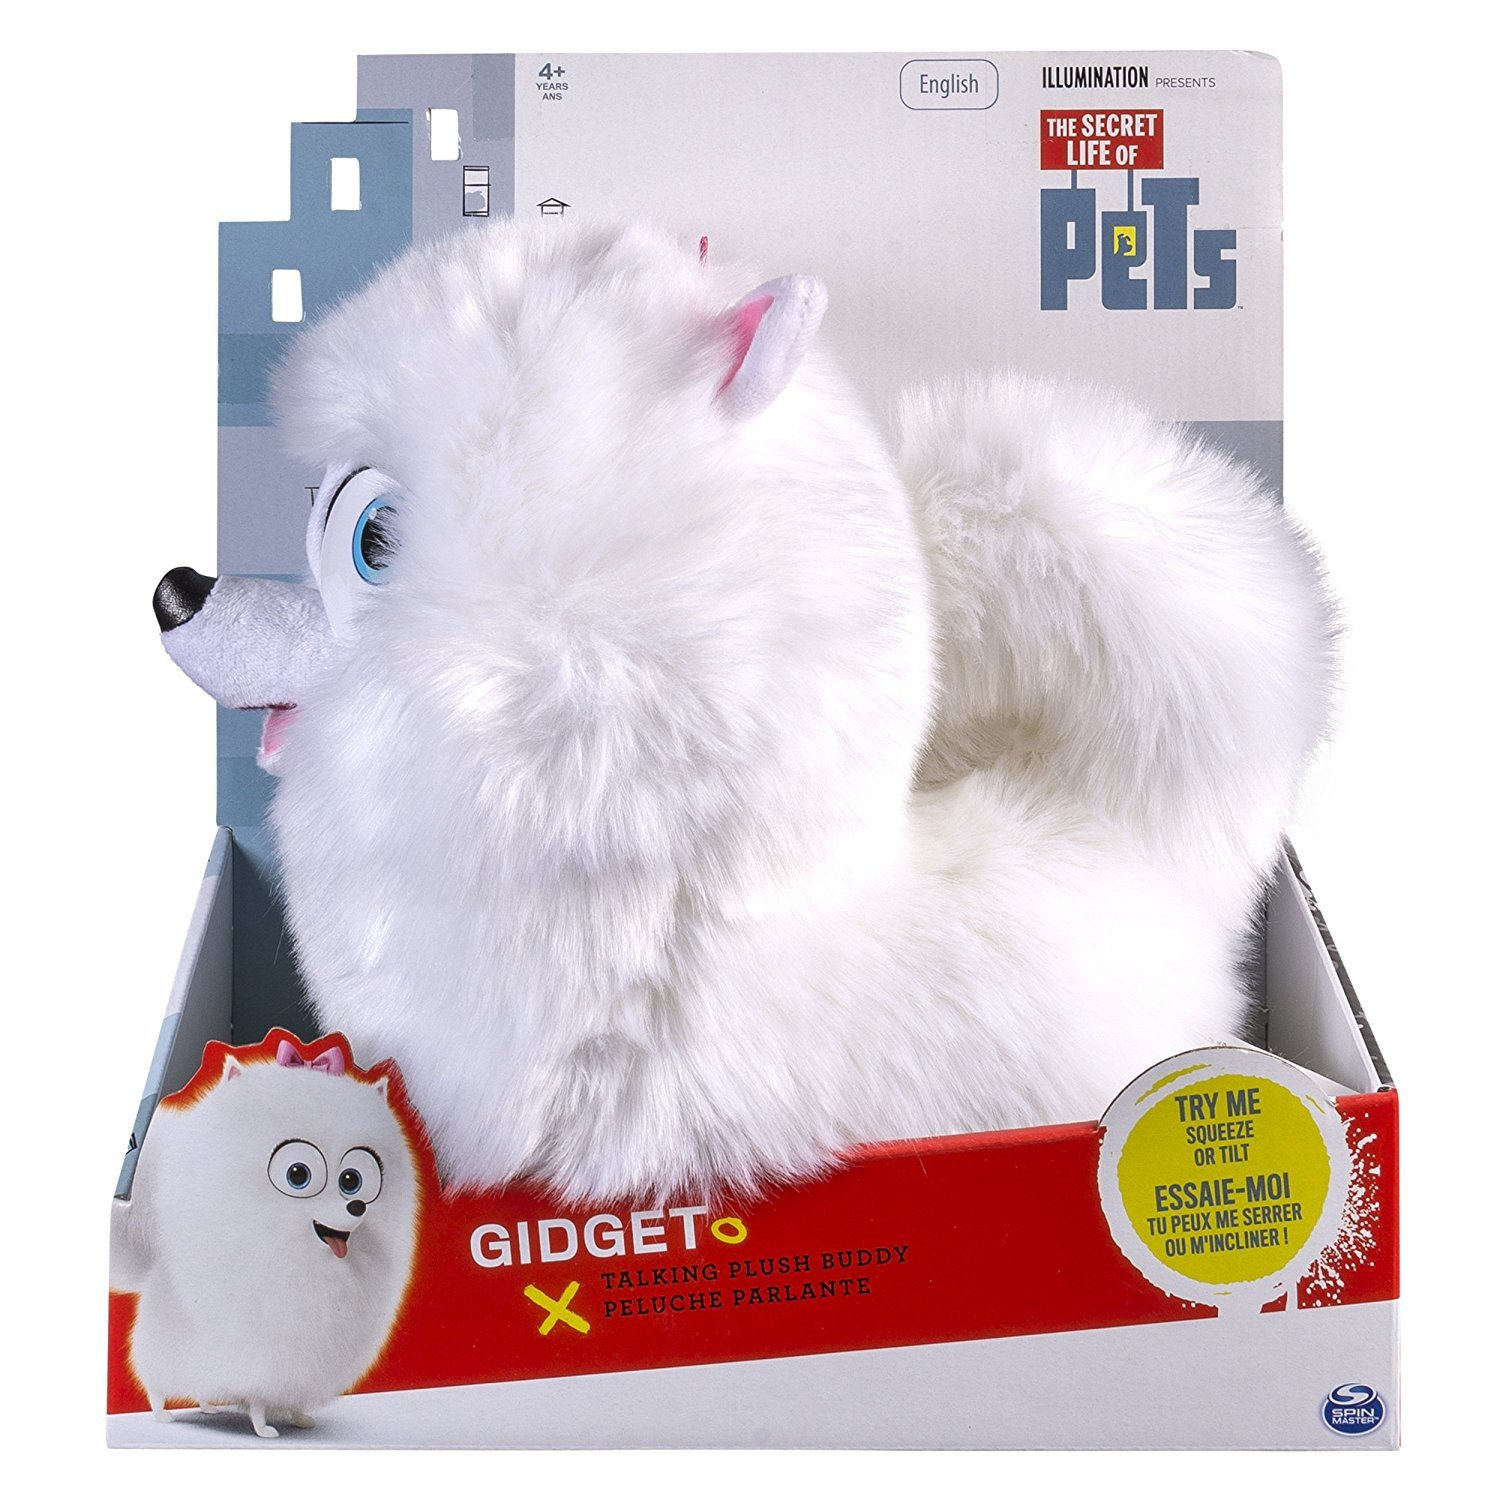 Amazon.com: Best Seller The Secret Life of Pets - Gidget 12